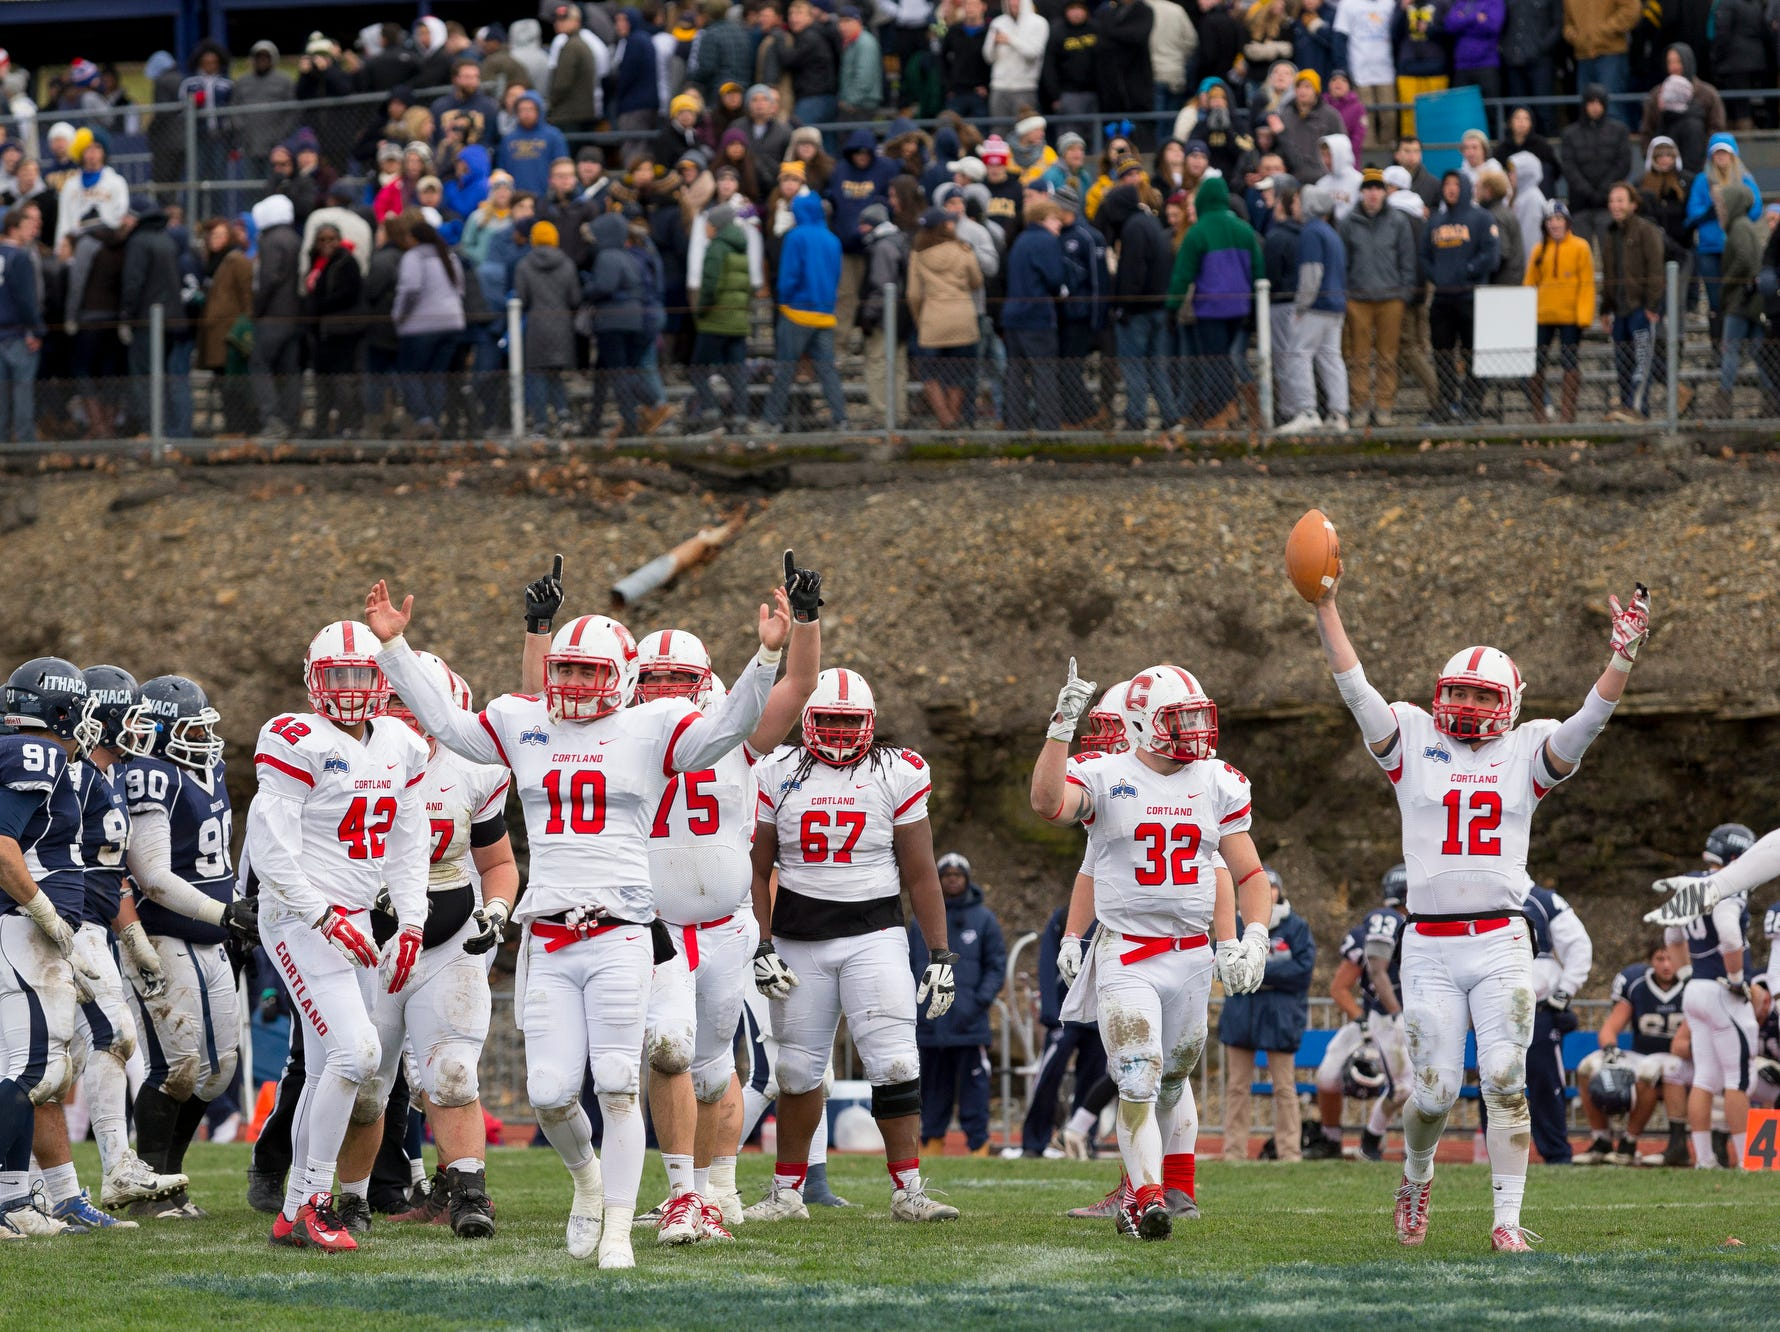 2015: Cortland players celebrate as time runs out in their 11-8 Cortaca Jug win over Ithaca College Saturday afternoon in Ithaca.